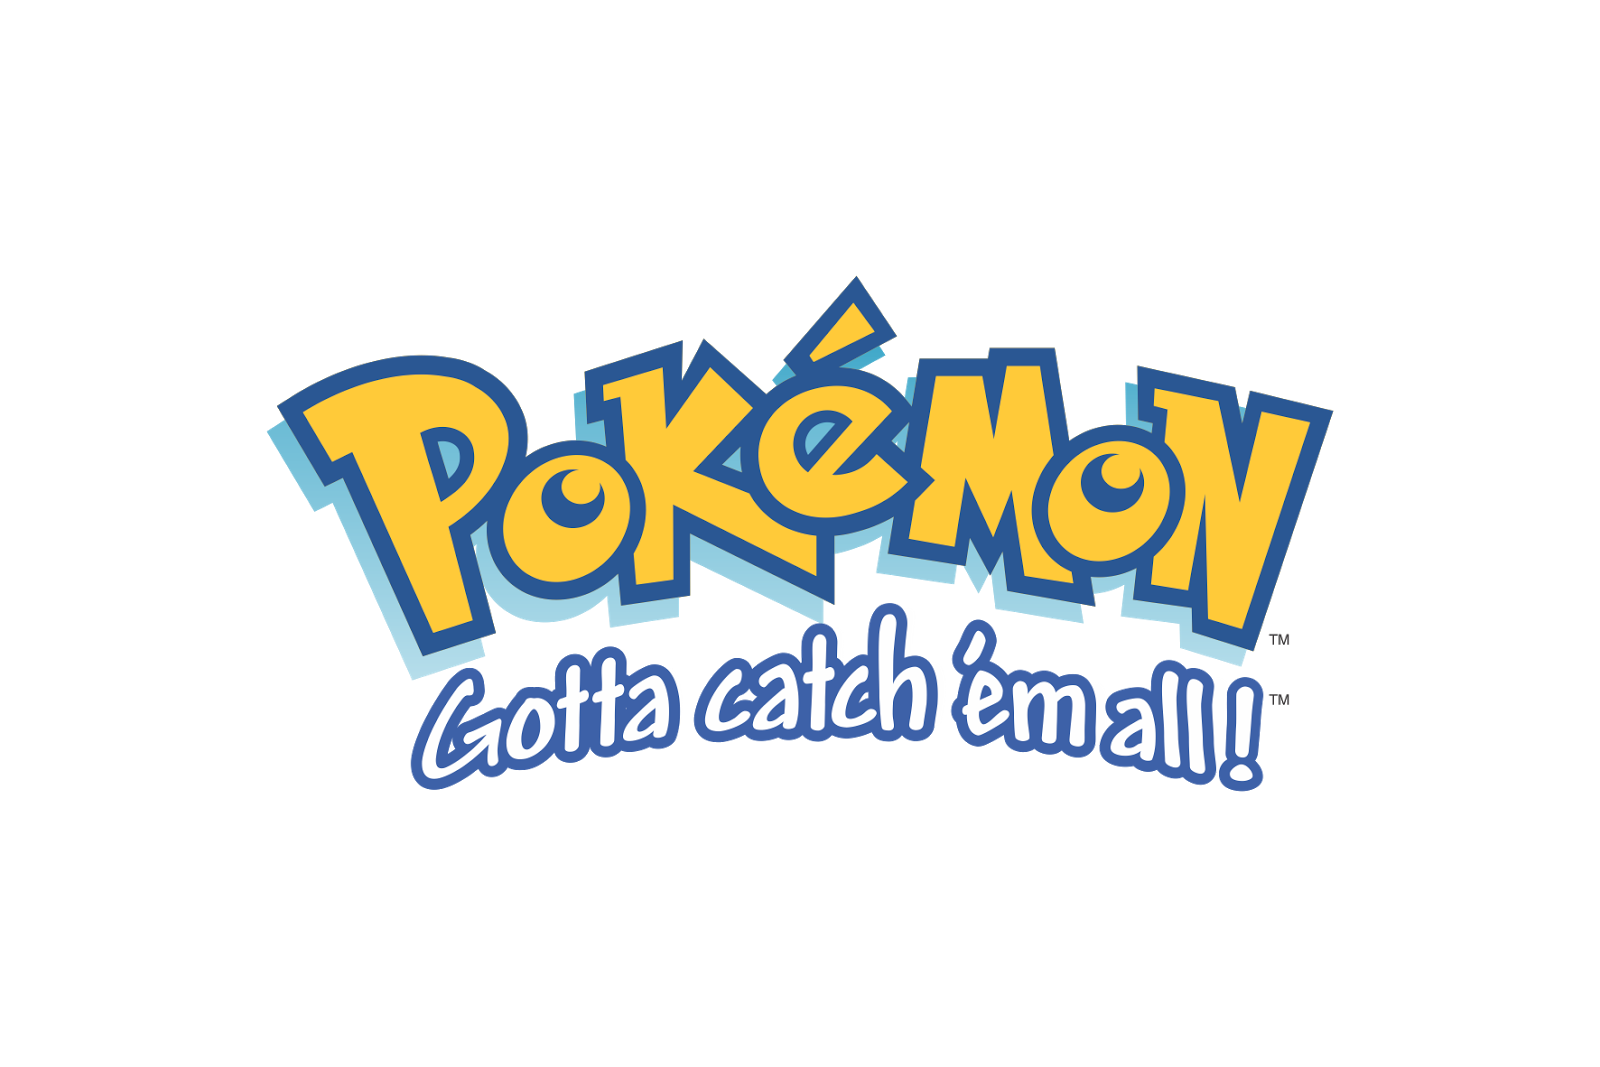 Pokémon Logo - Gotta catch u0027em all! | Pokémon Logos | Pinterest | Pokémon - Pokemon Logo PNG